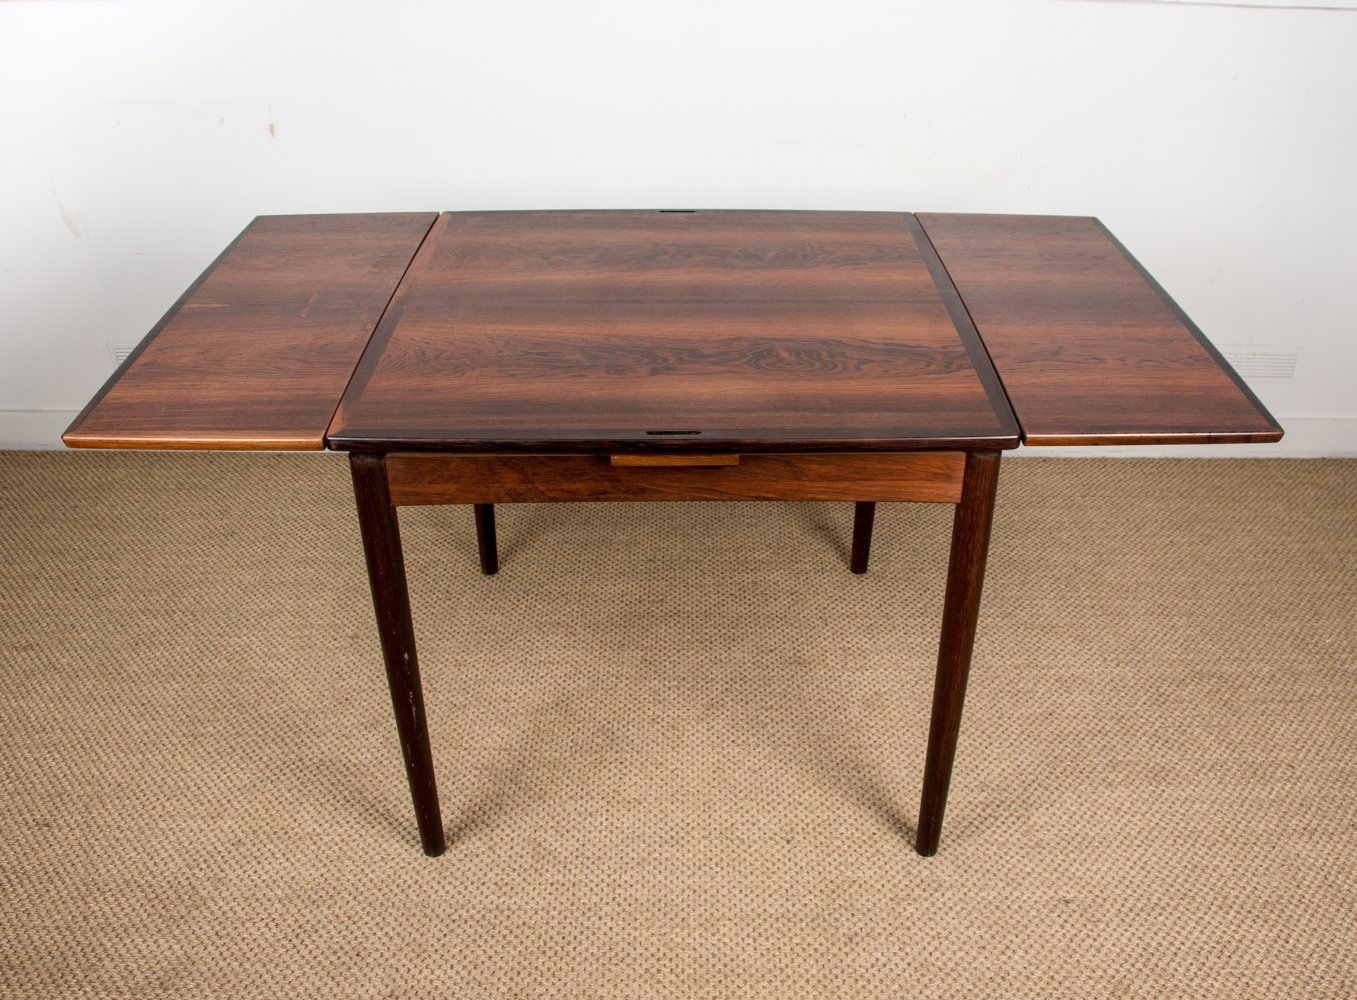 Extendable & Reversible Danish Table in rosewood by Poul Hundevad, 1960